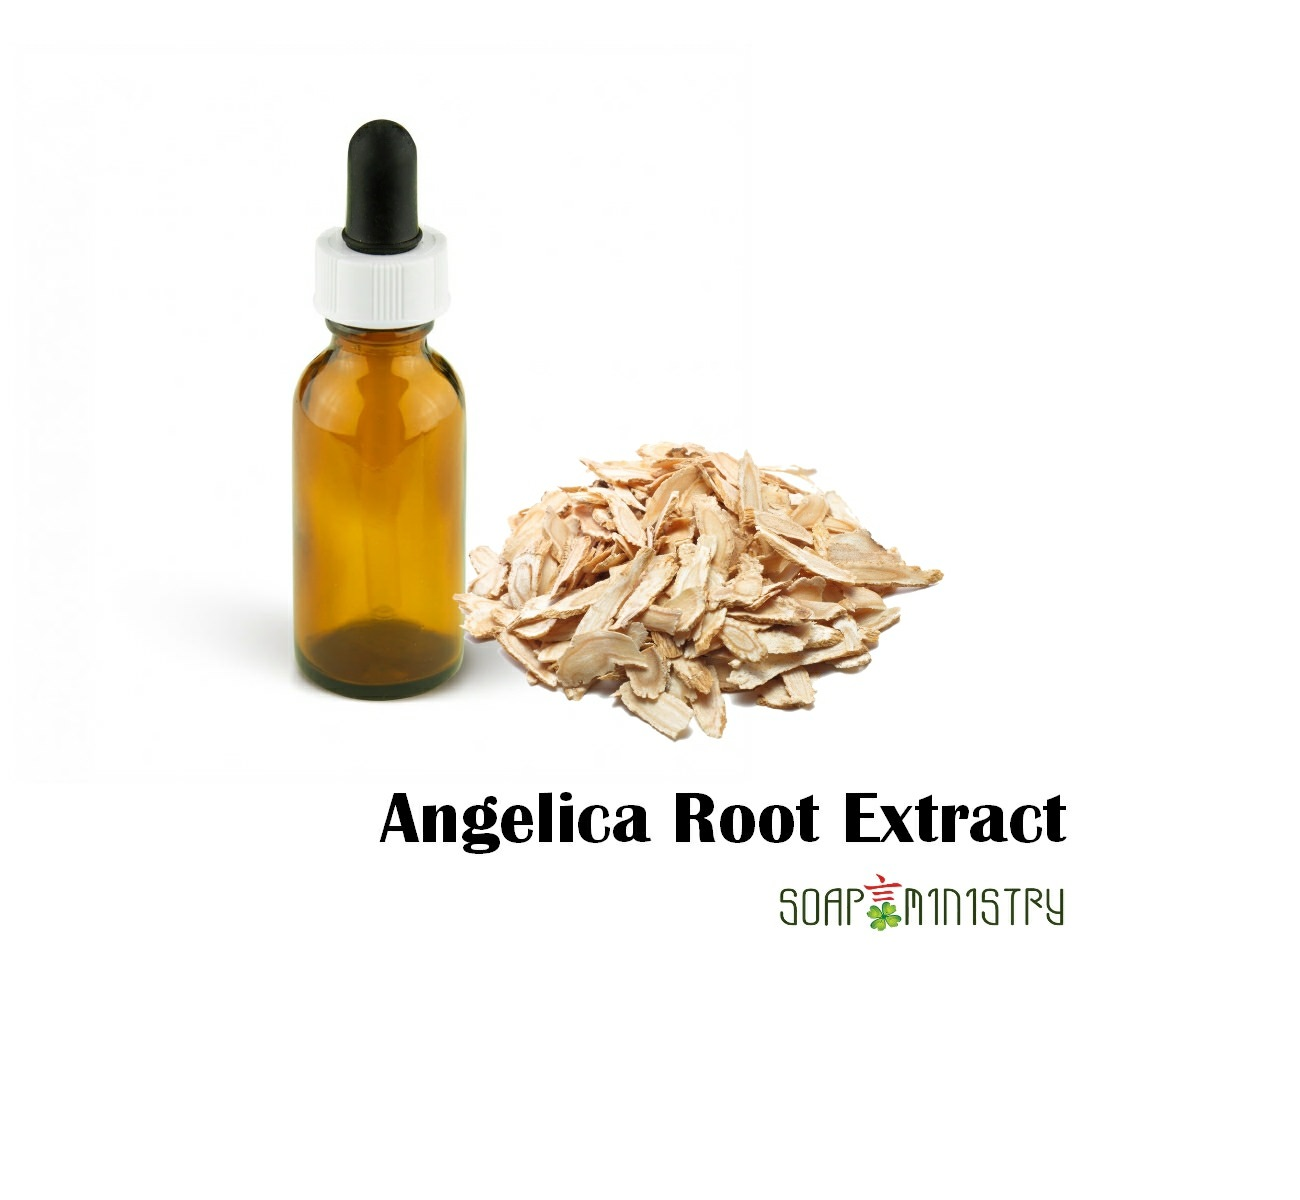 Angelica Root Extract 15g